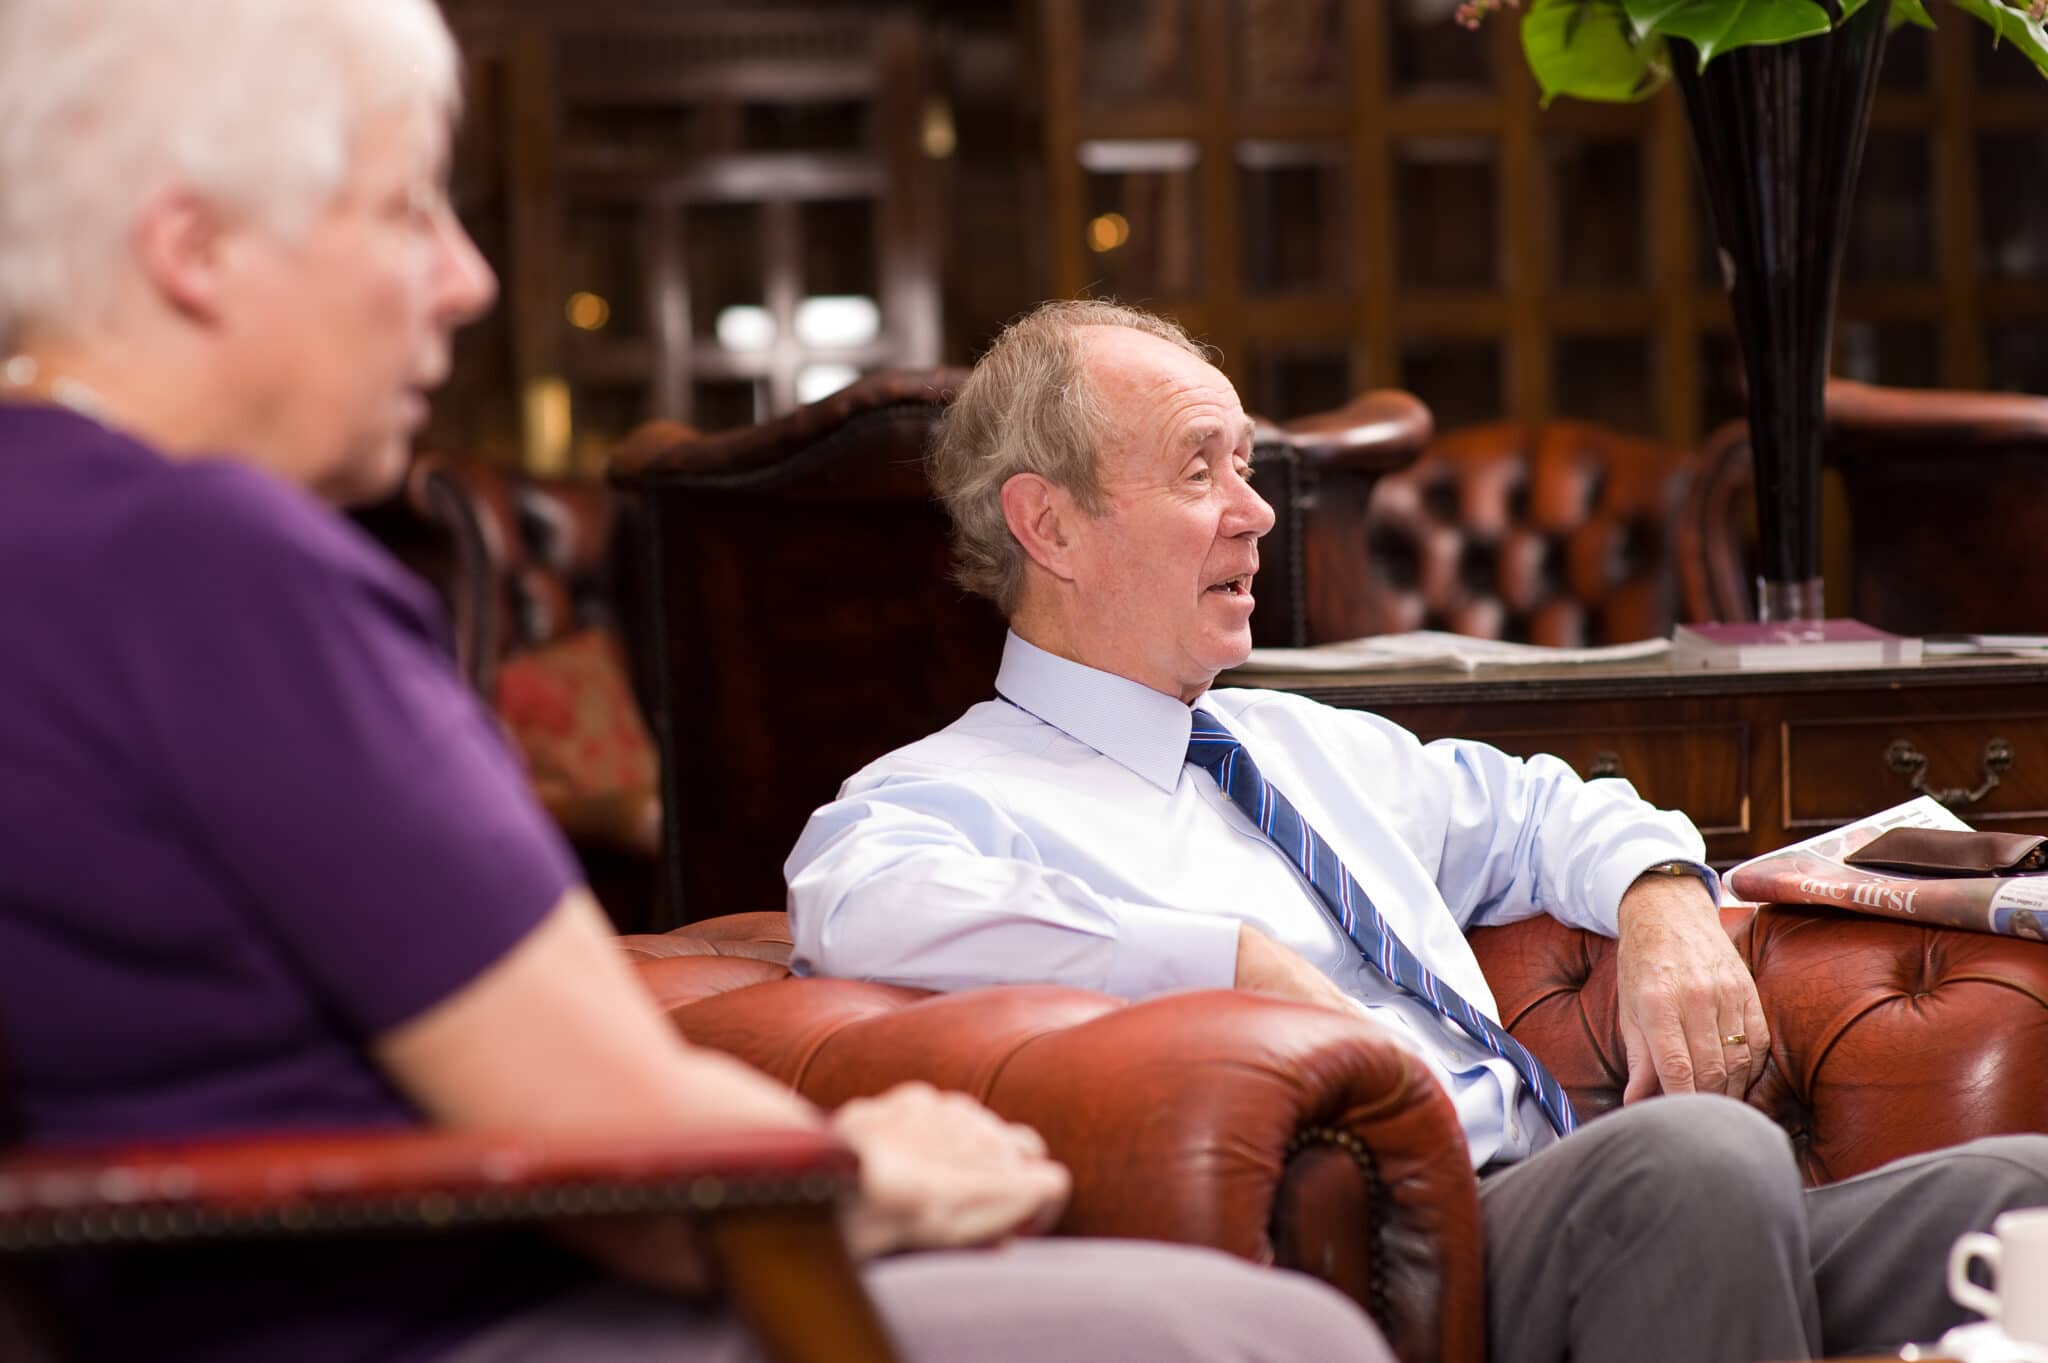 Happy older man lounging in an armchair